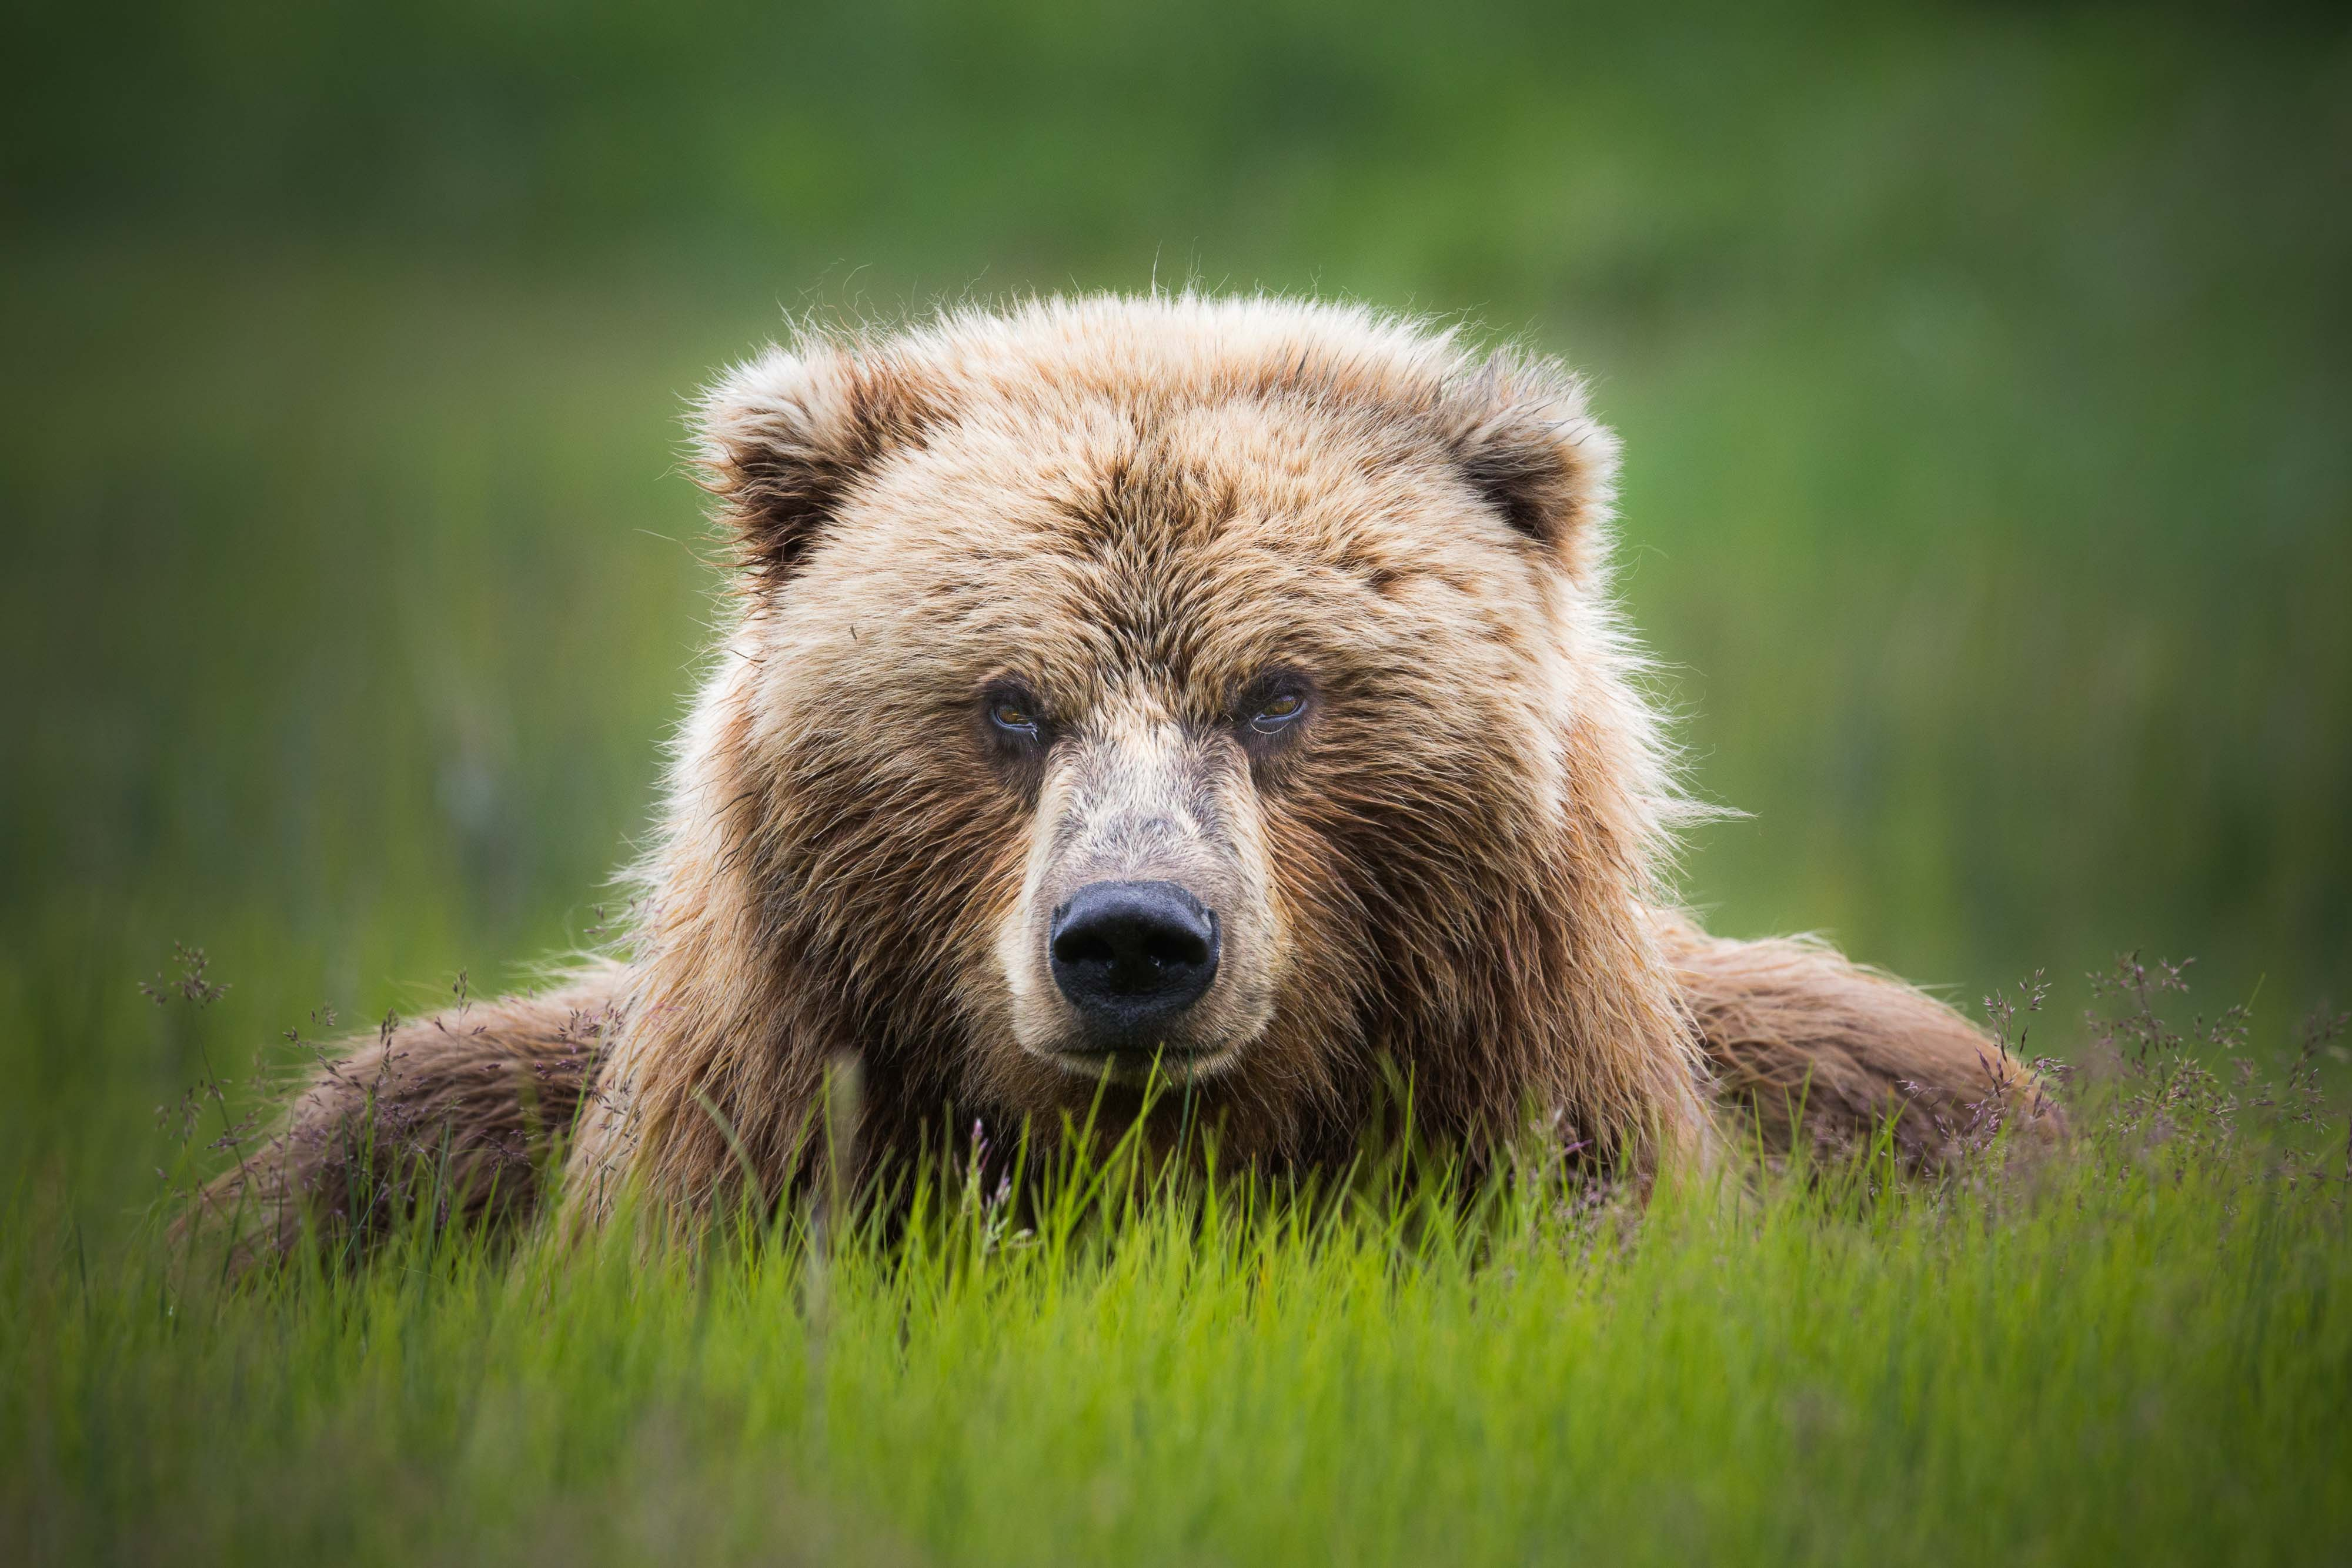 Grazing Brown Bear limited edition print by Jay Goodrich